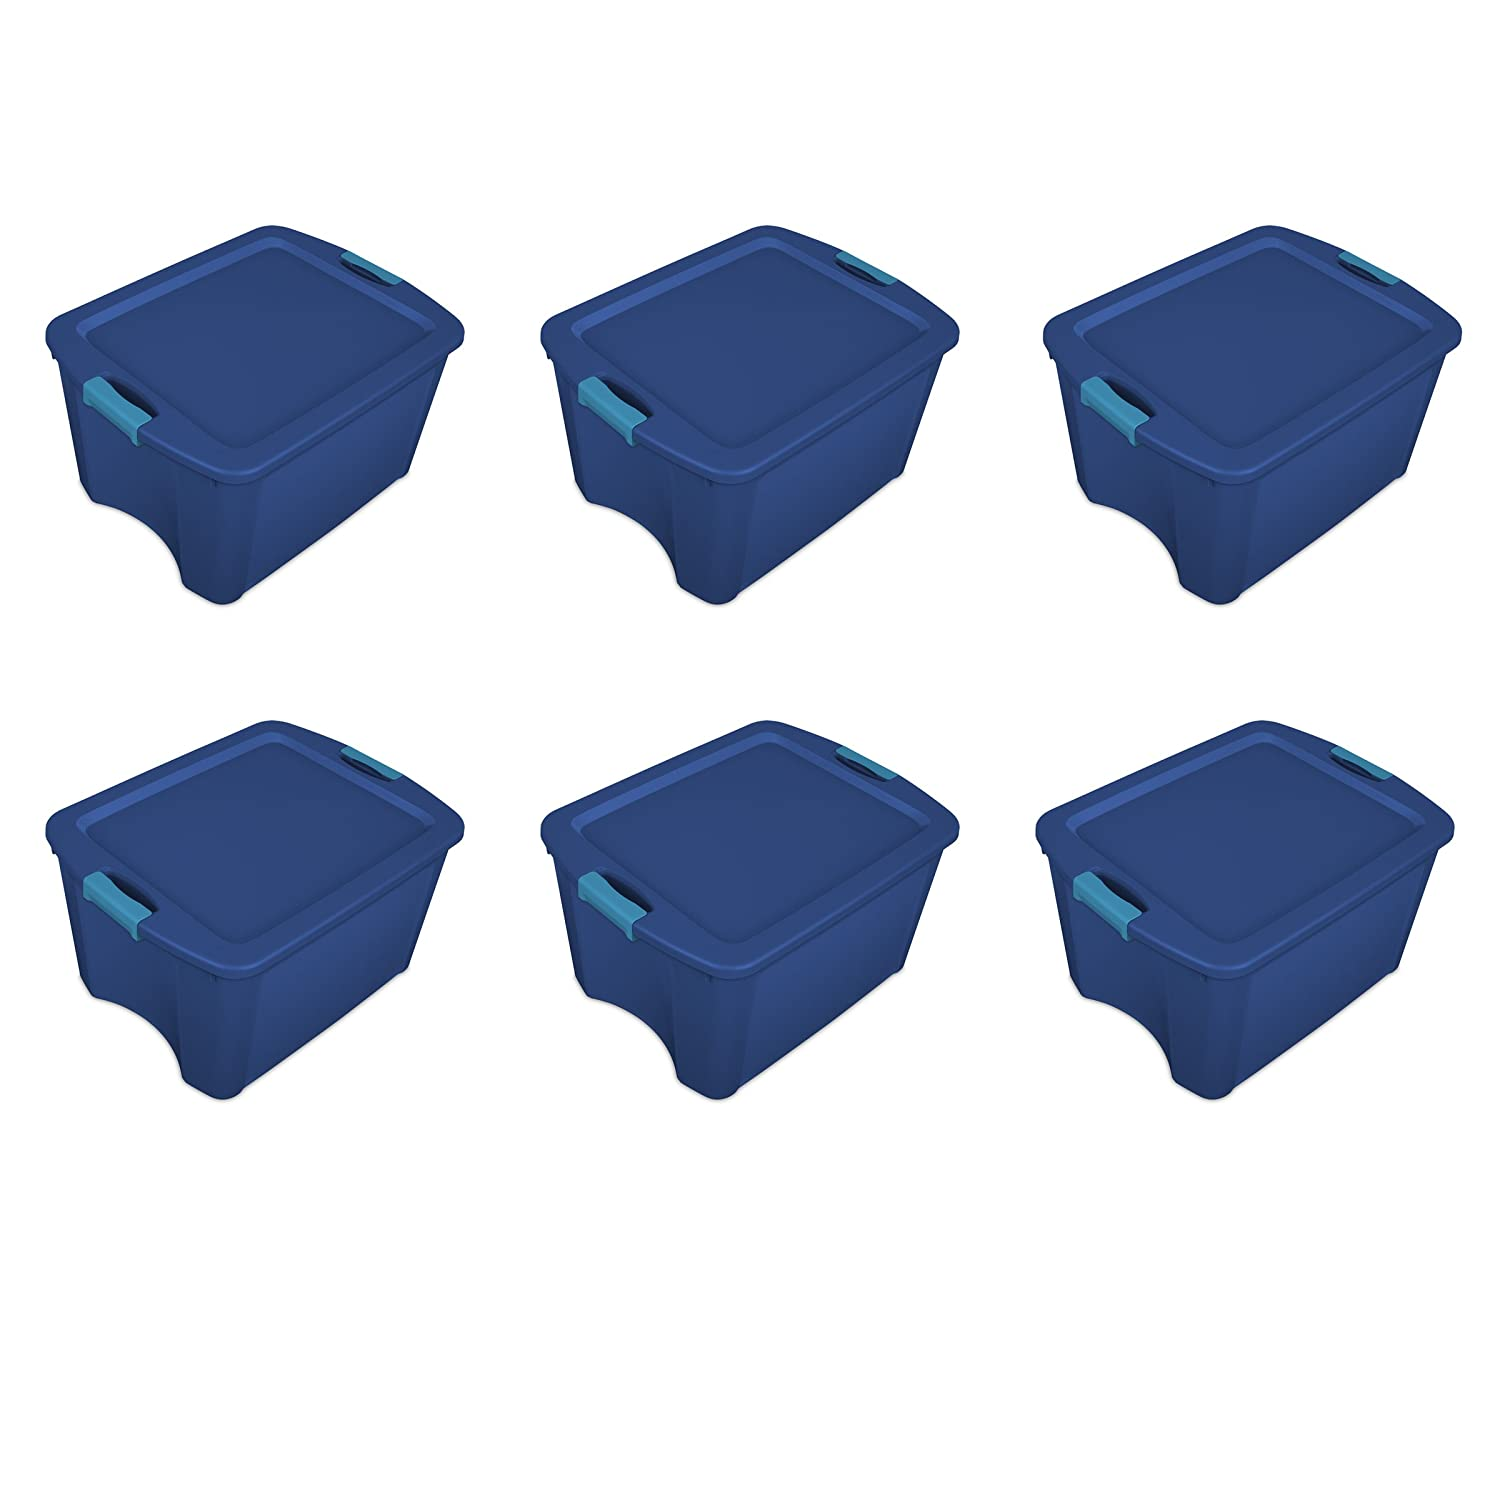 Sterilite 14467406 18 Gallon/68 Liter Latch and Carry, True Blue Lid and Base with Blue Aquarium Latches, 6-Pack